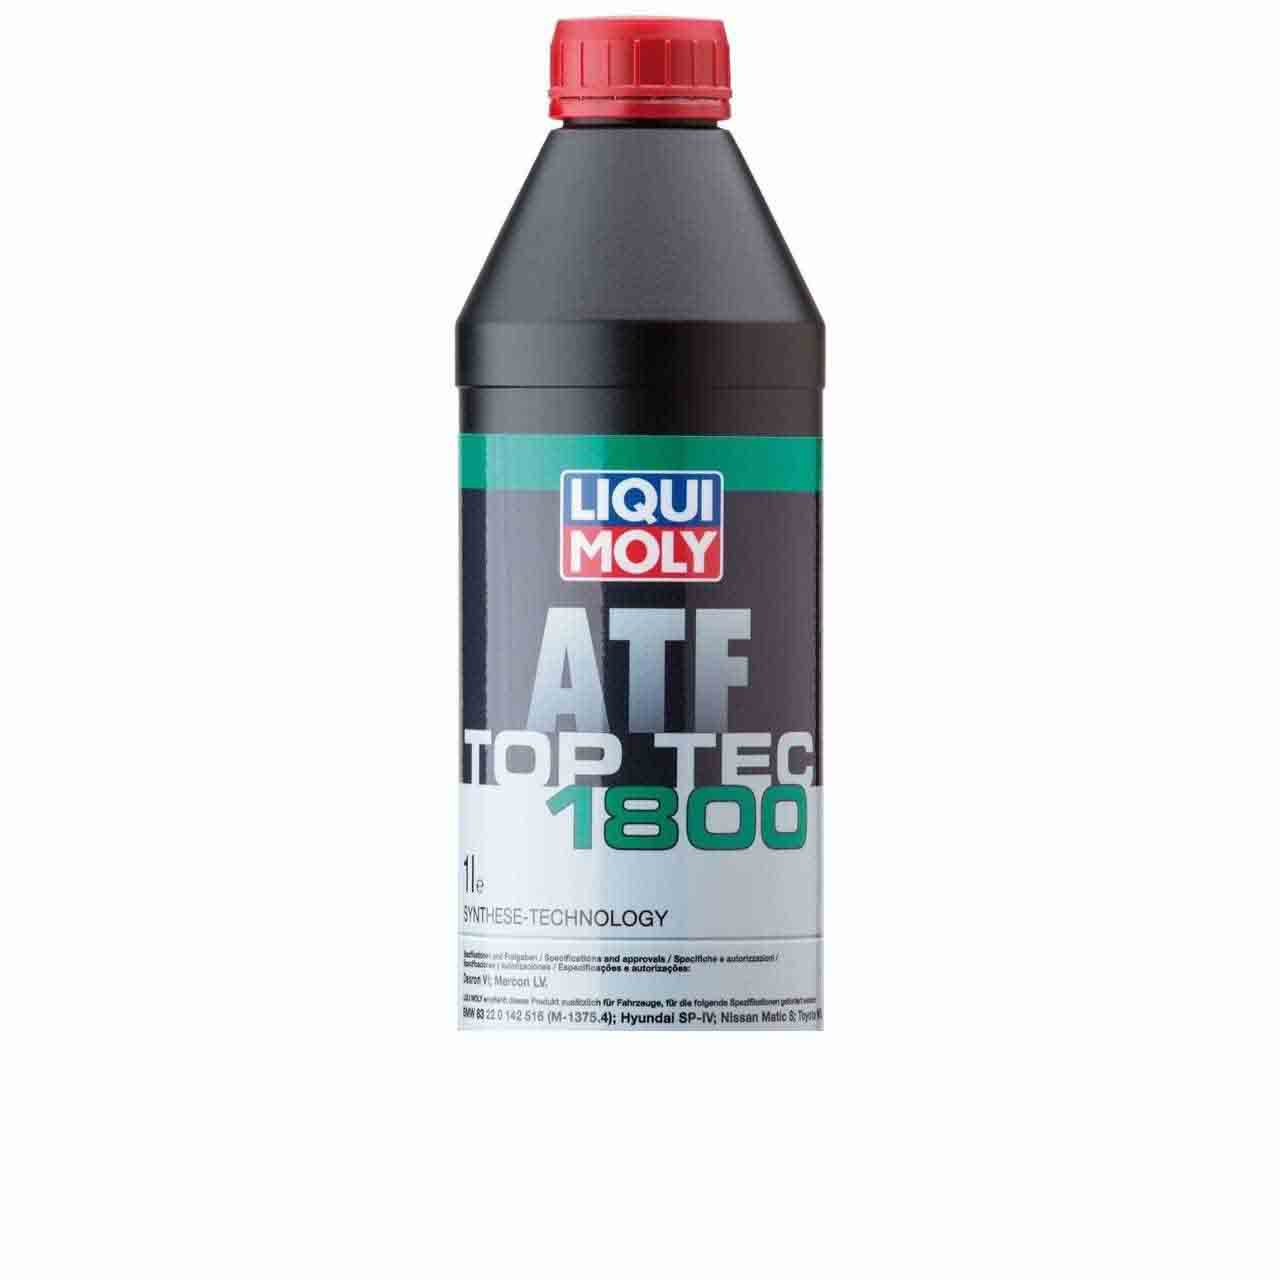 Top Tec Atf 1800 Zf6Hp Olio Trasmissioni 1 Litro Liqui Moly Discovery 3-4 Land Rover GR2-04973